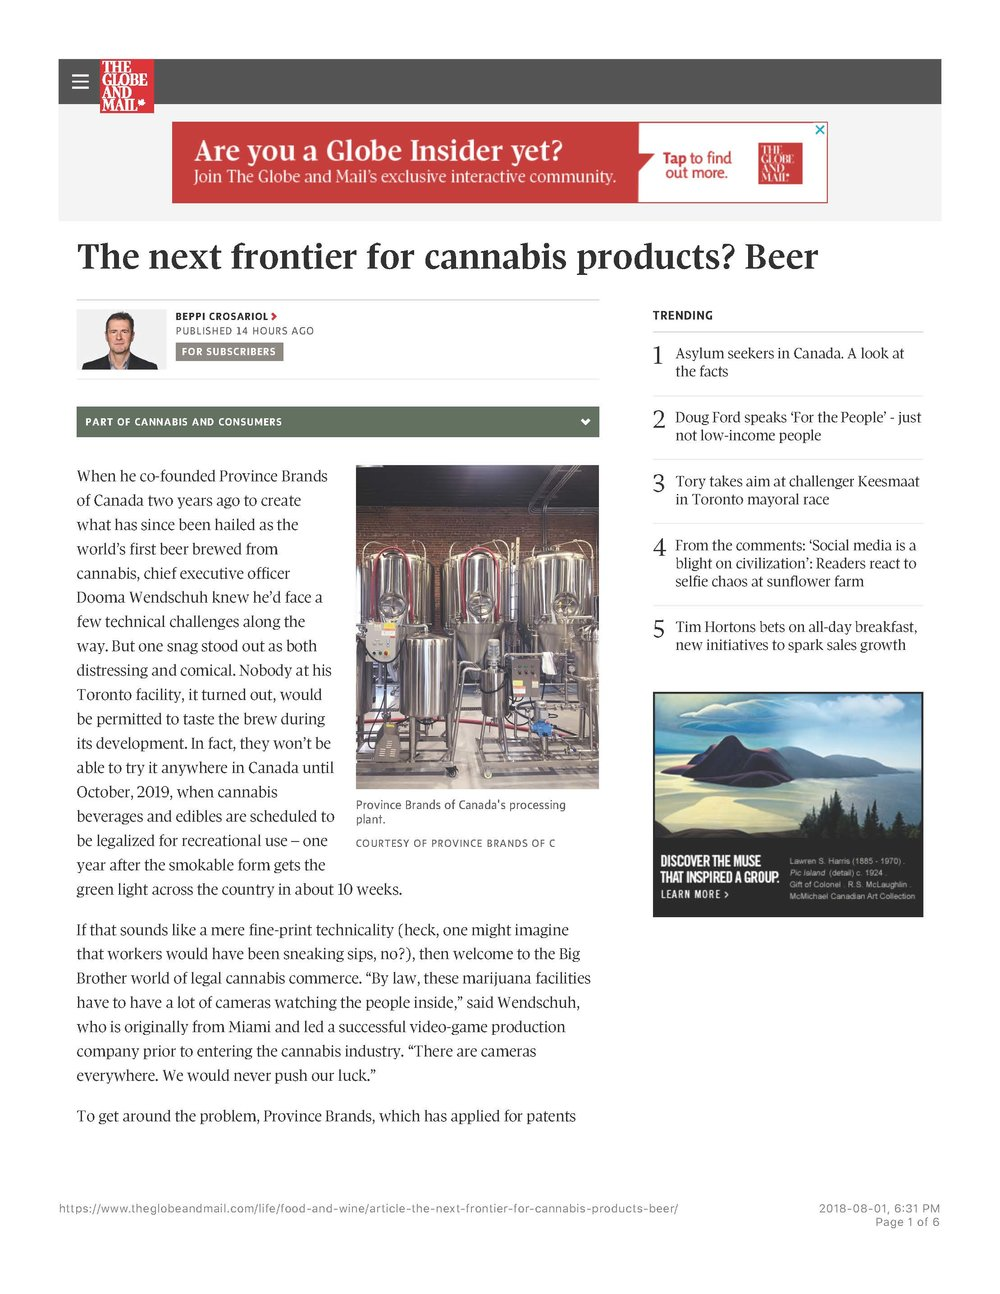 G&MThe next frontier for cannabis products Beer - The Globe and Mail_Page_1.jpg